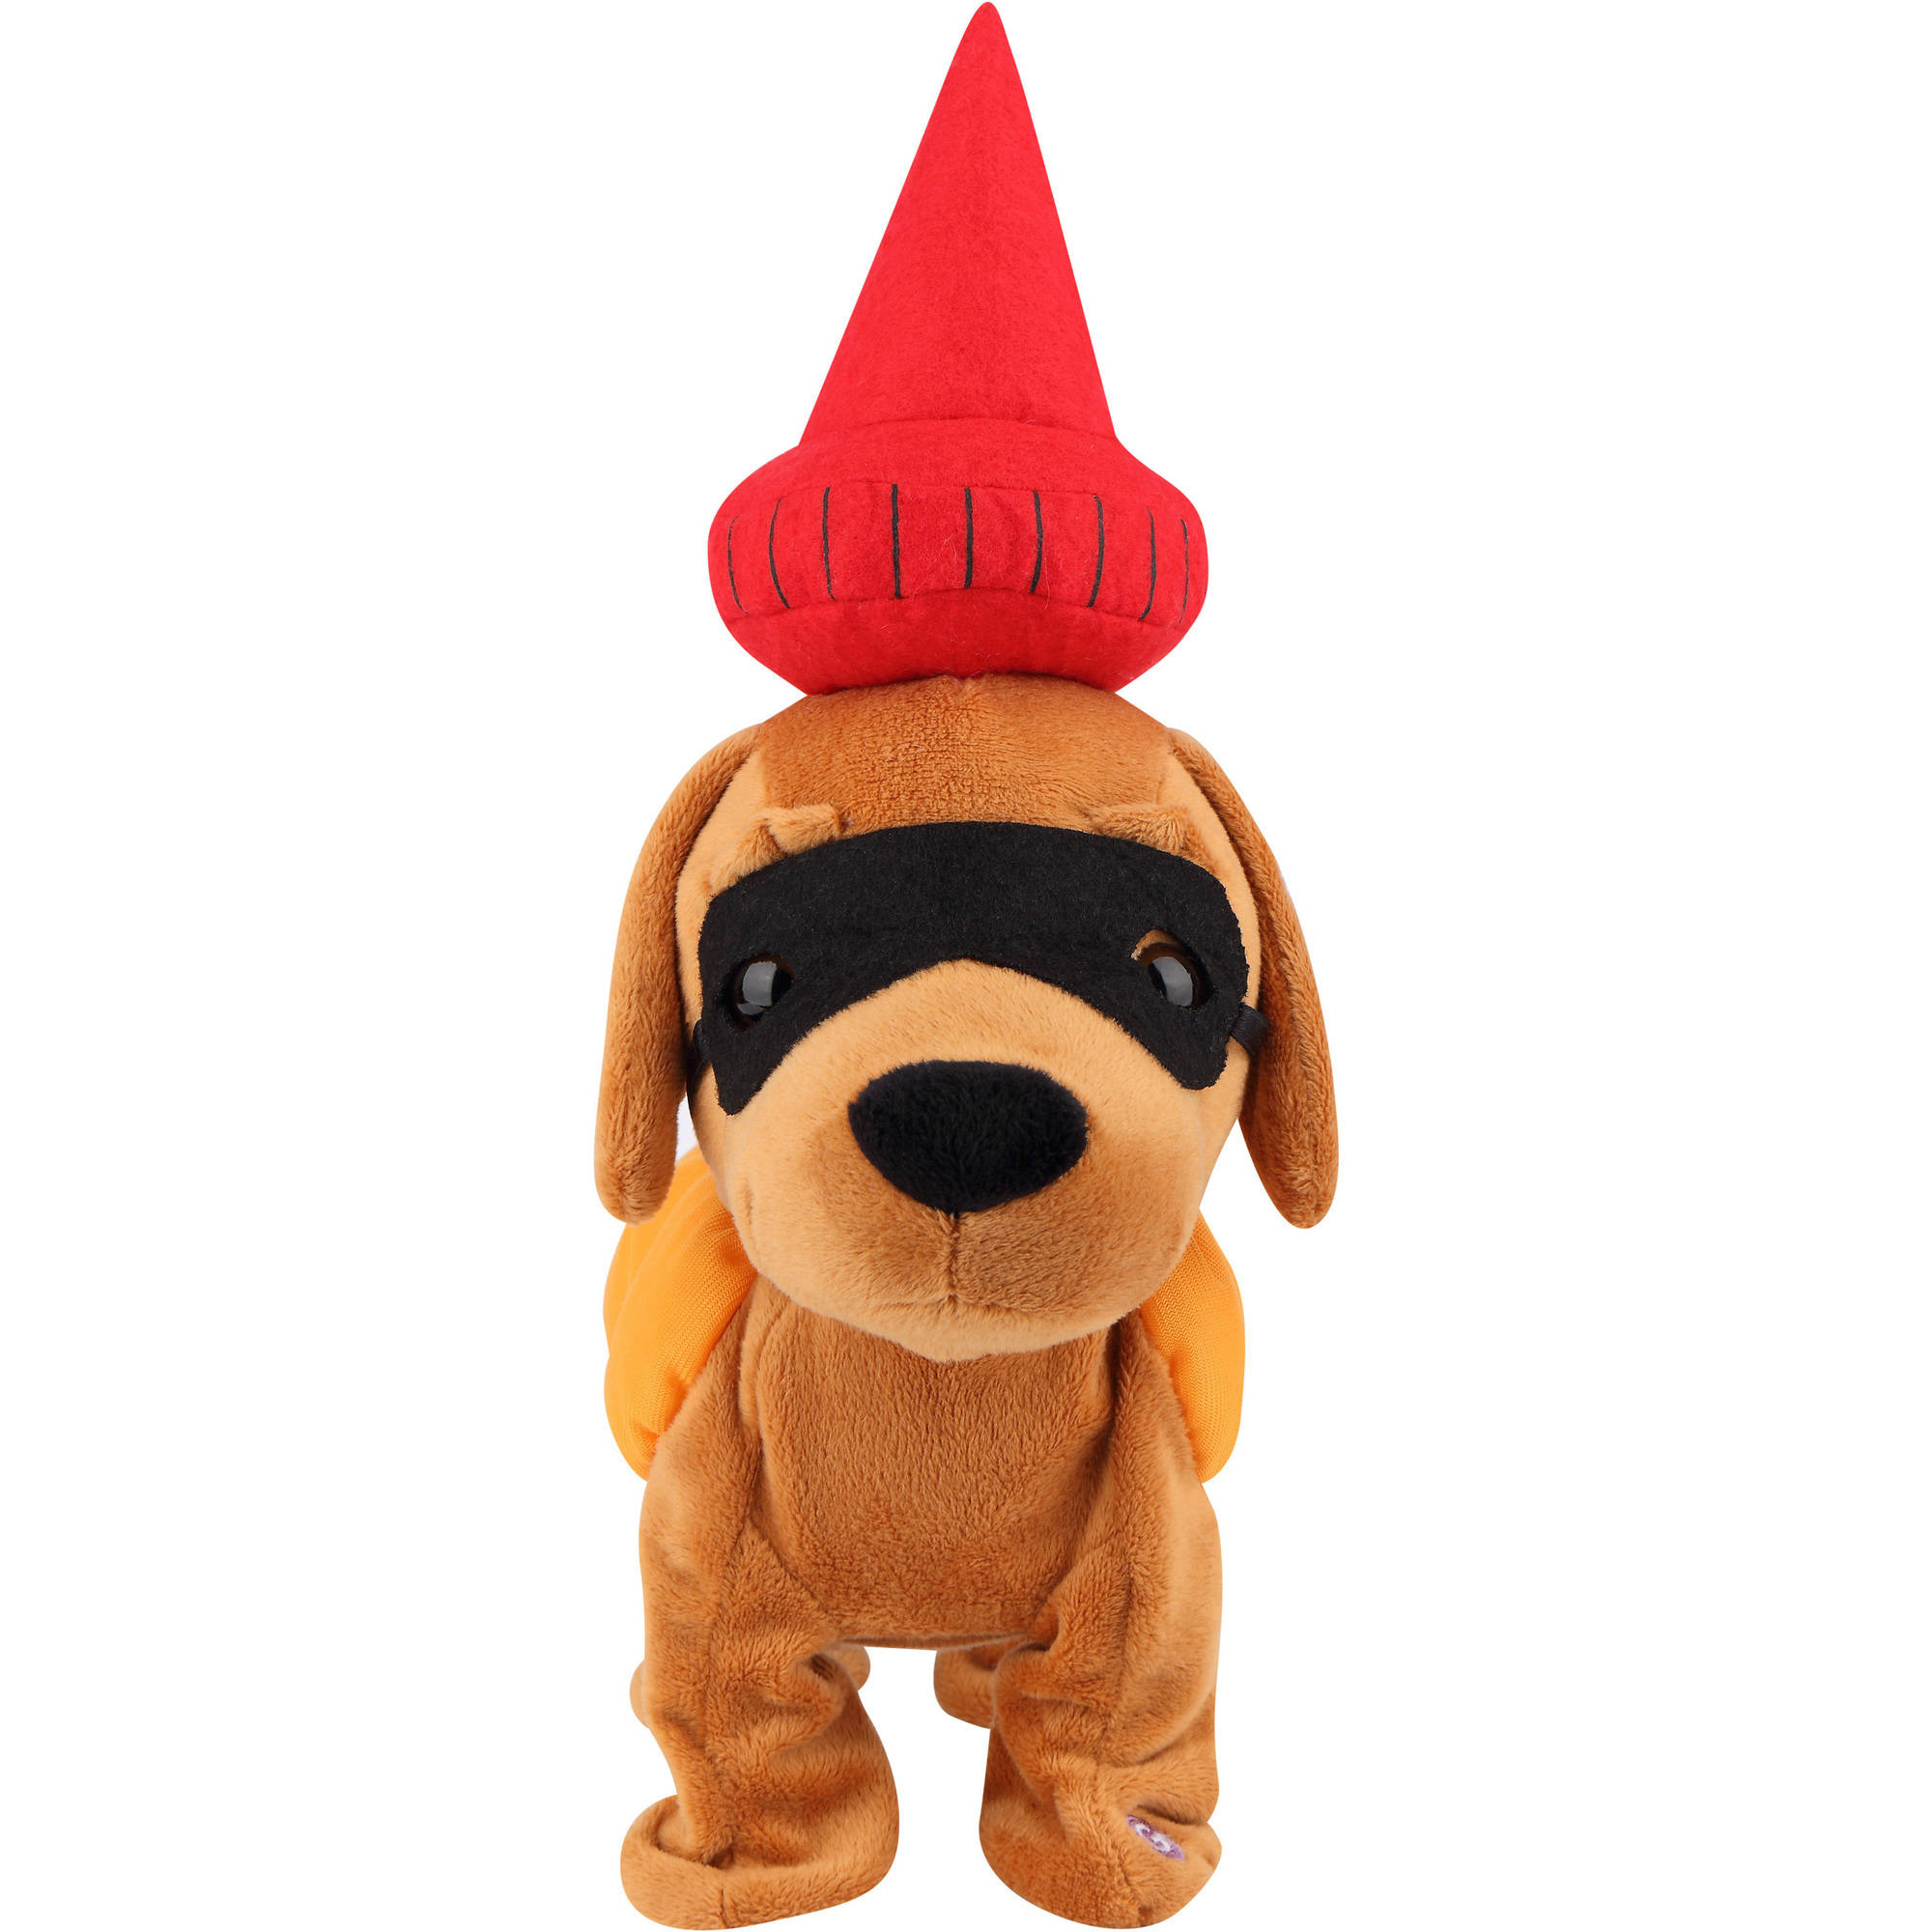 gemmy animated dancing weiner dog halloween decoration walmartcom - Www Gemmy Com Halloween